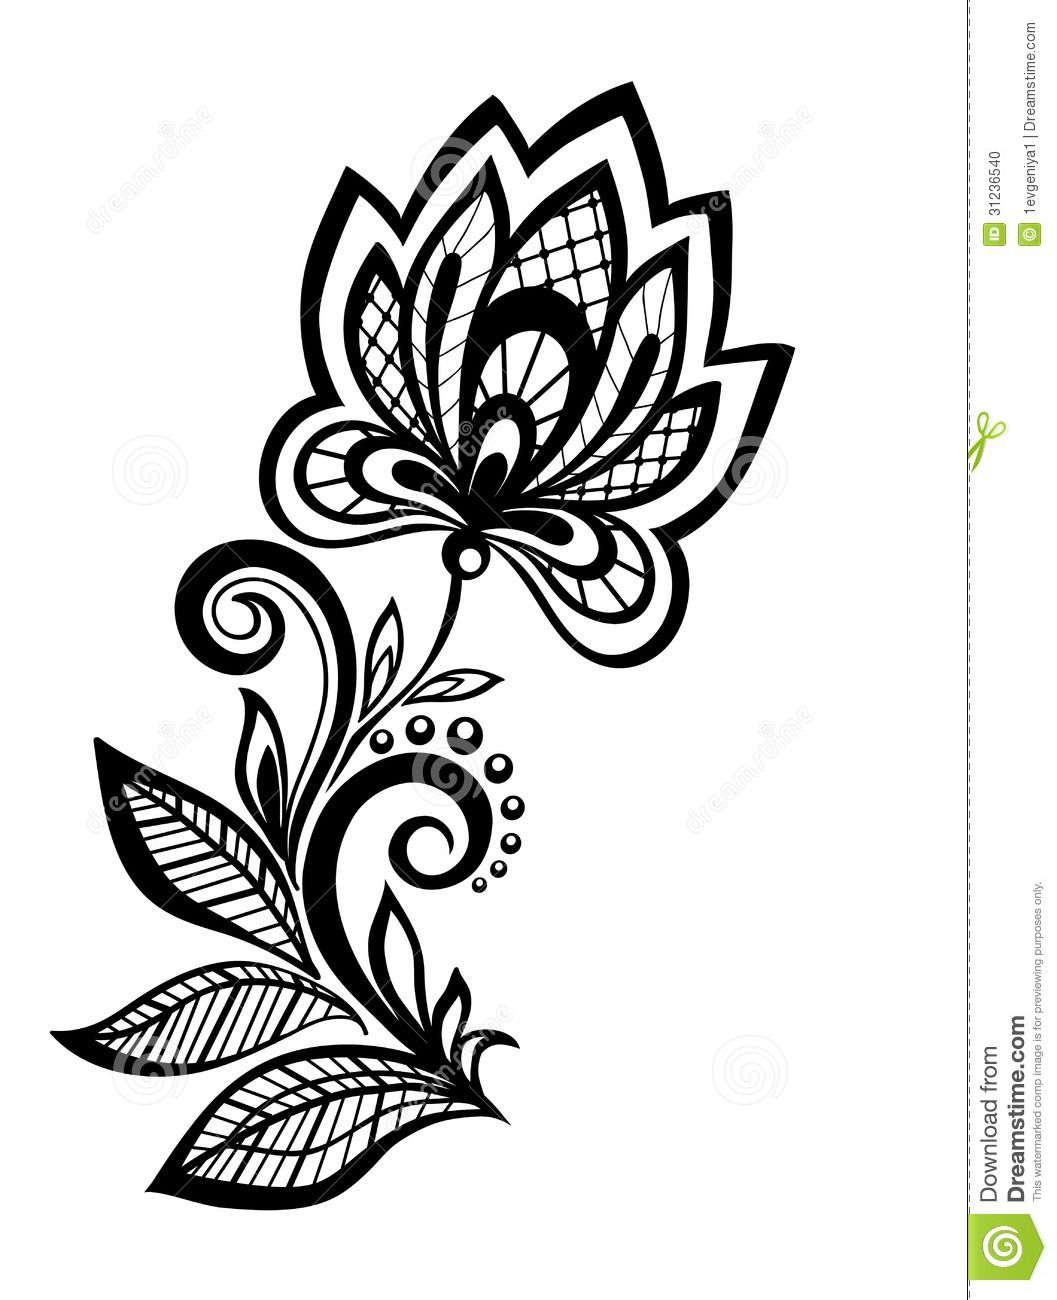 Black And White Floral Pattern Design Element. Stock Photo